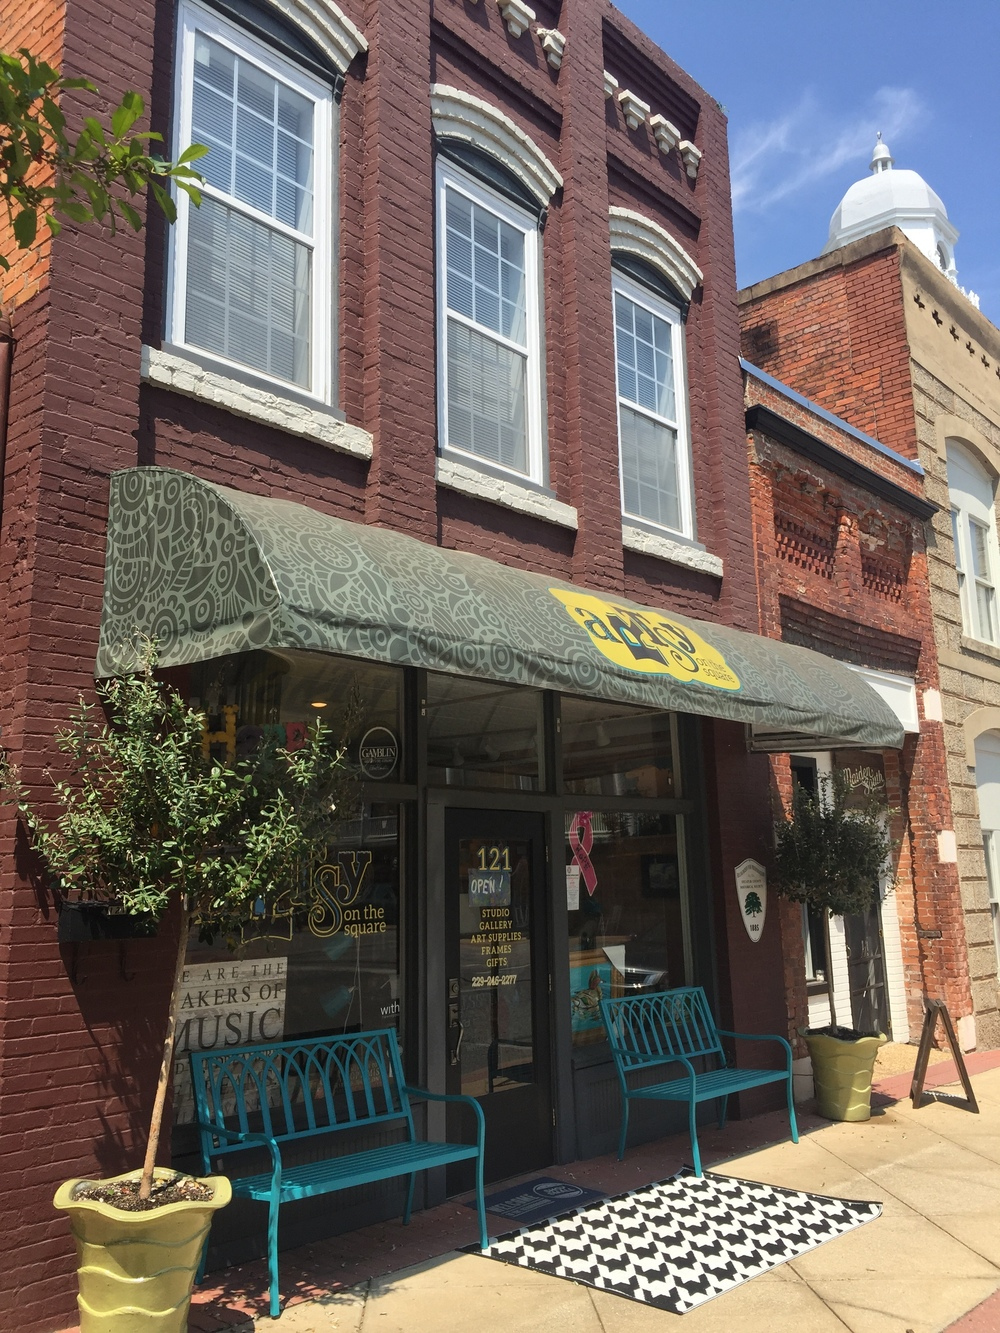 Artsy On The Square-Awning Design, Print, Installation